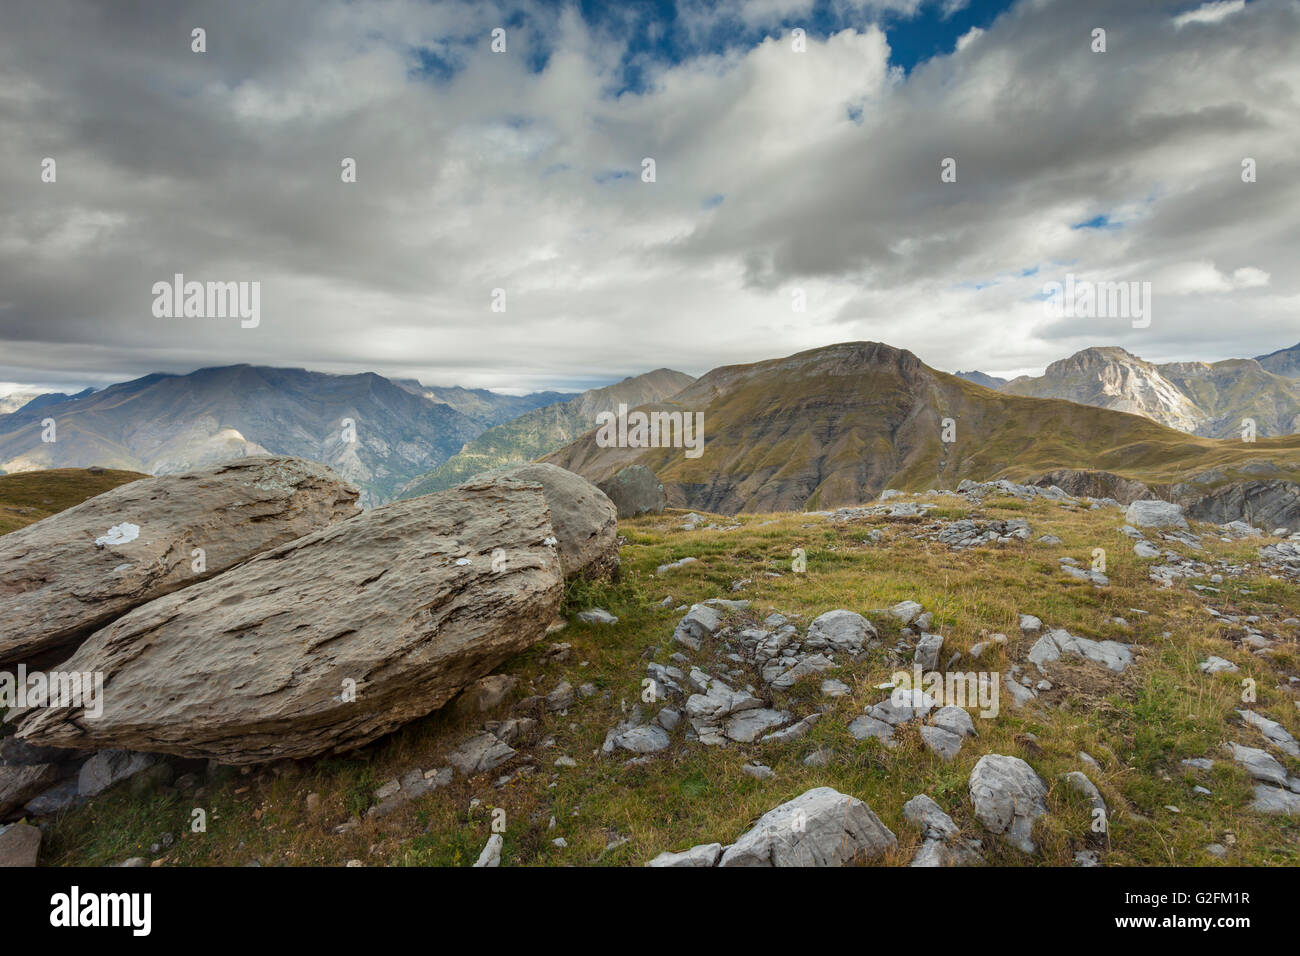 Morning in Sierra de Tendenera near Panticosa, Spanish Pyrenees. - Stock Image